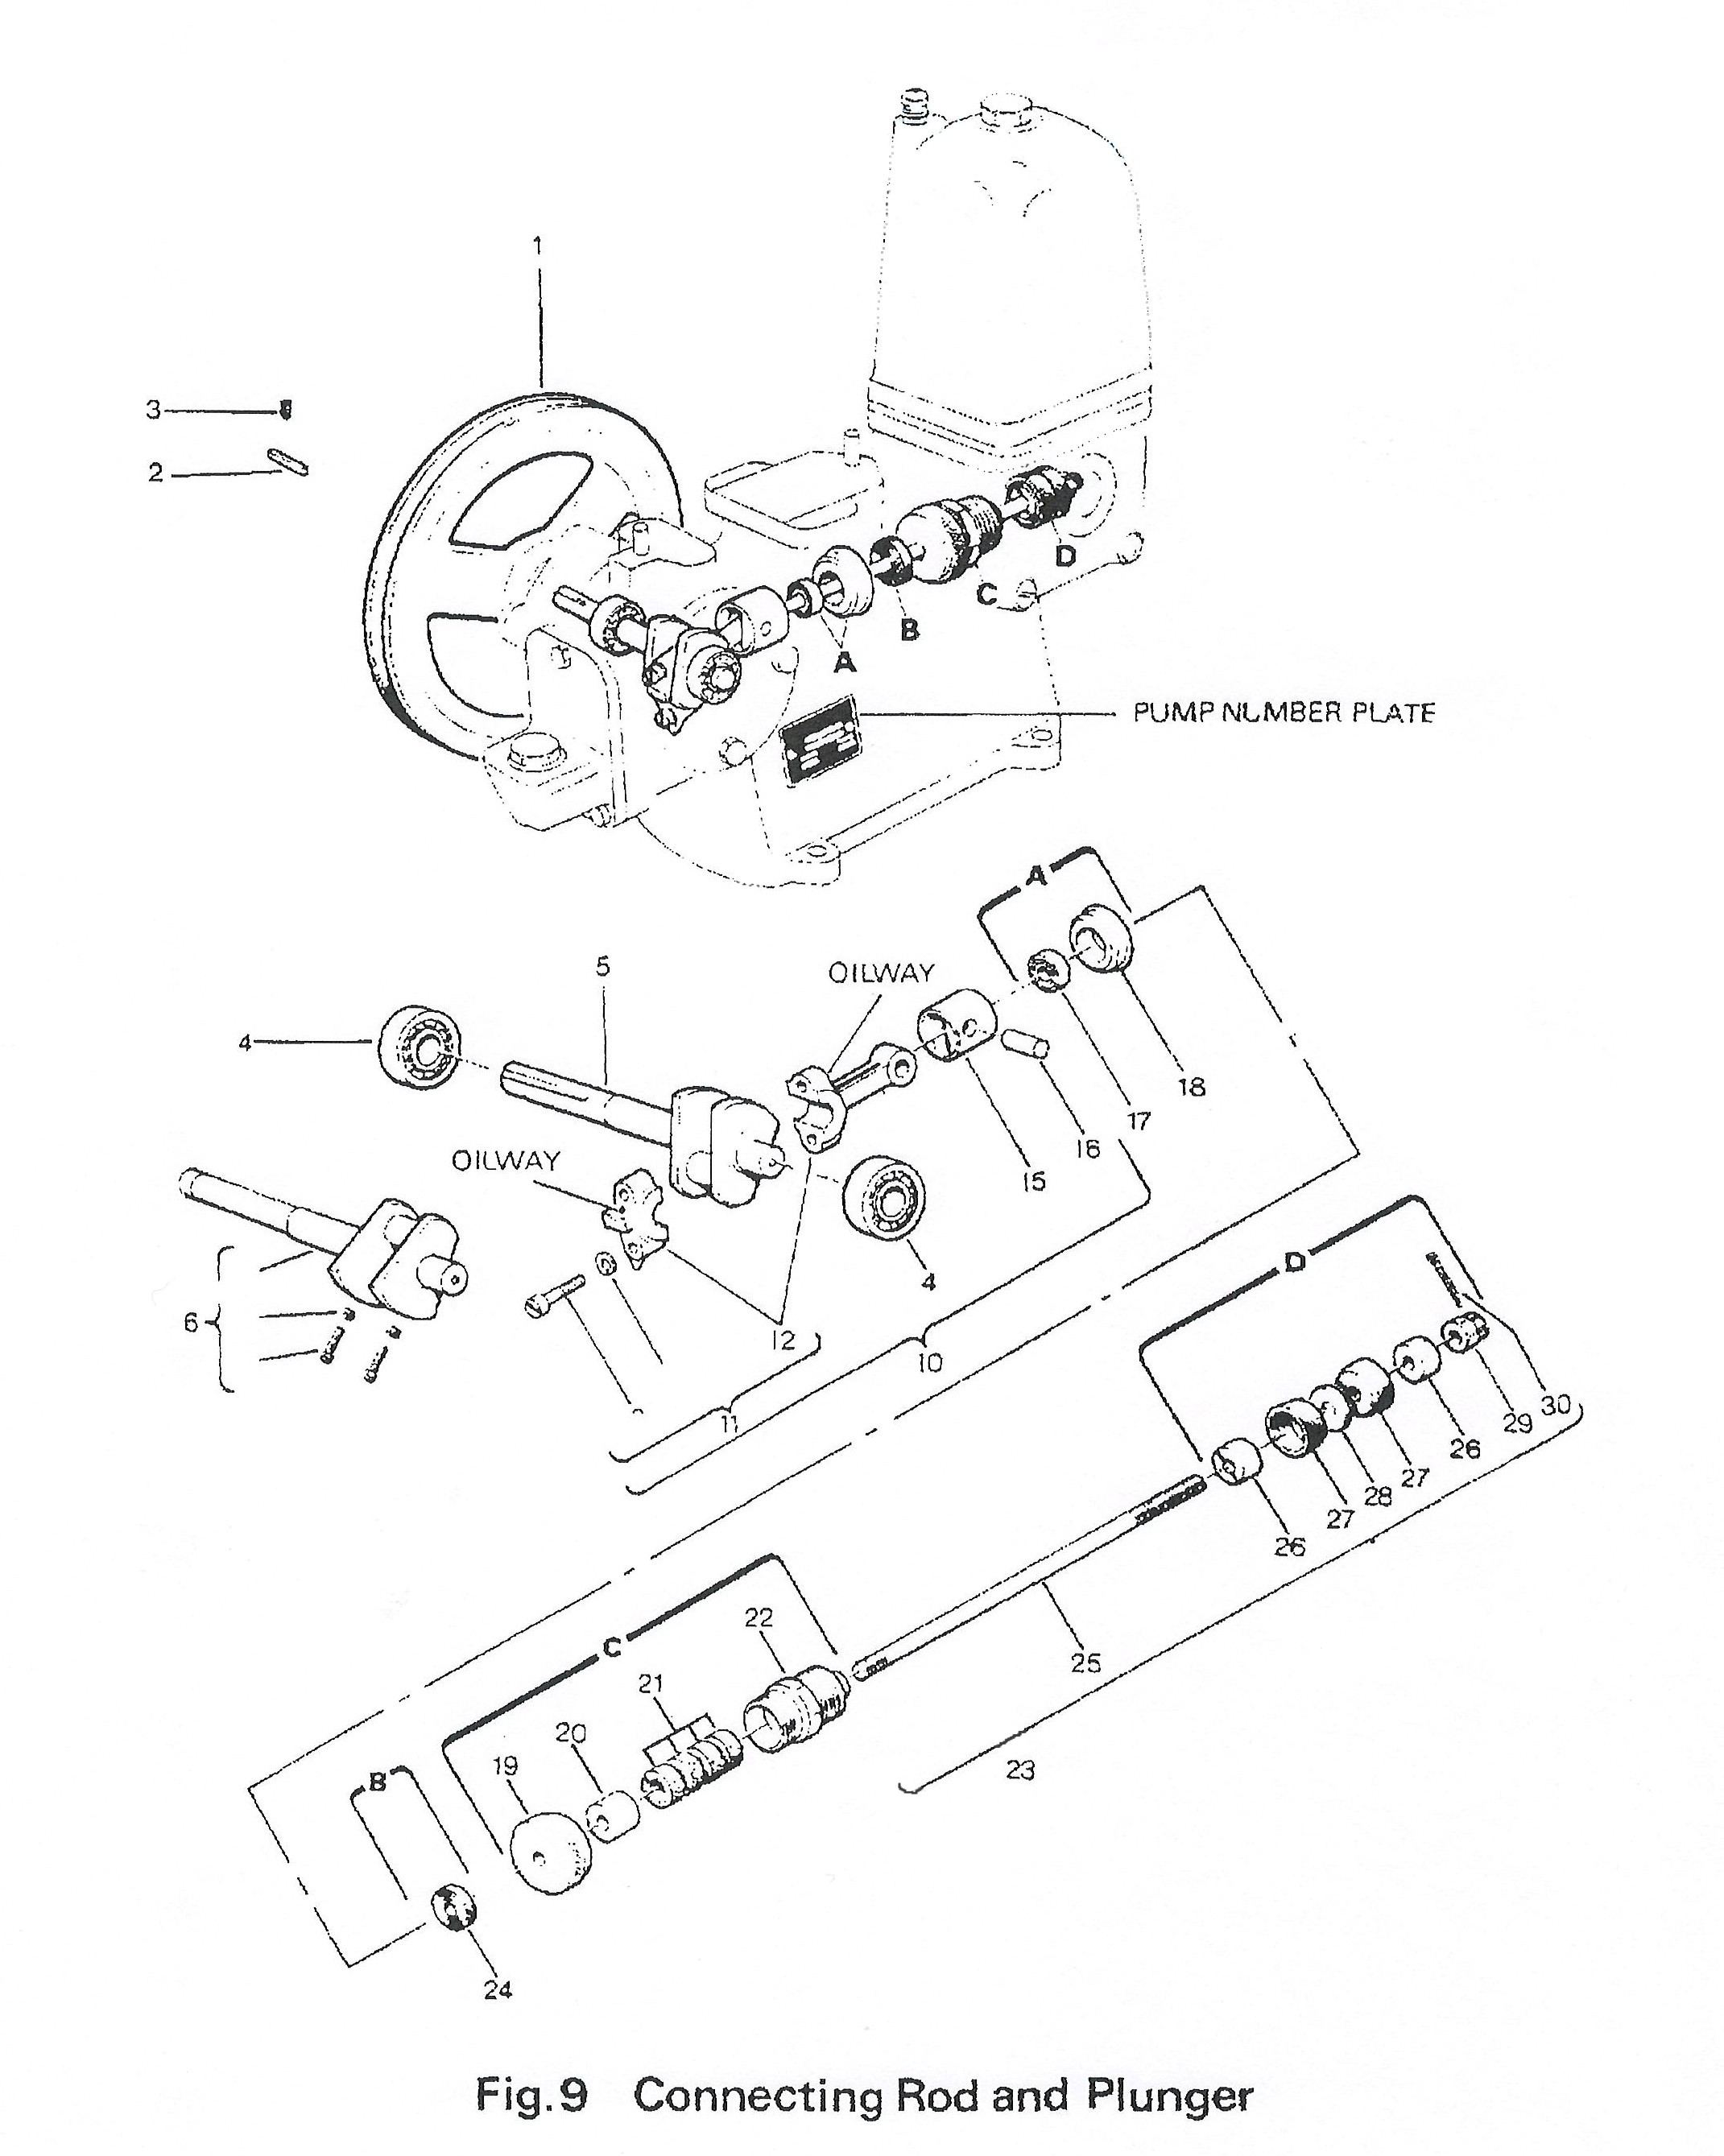 lister domestic water pump spares water pumps \u0026 spares Ford Engine Diagram lister domestic water pump figure 9